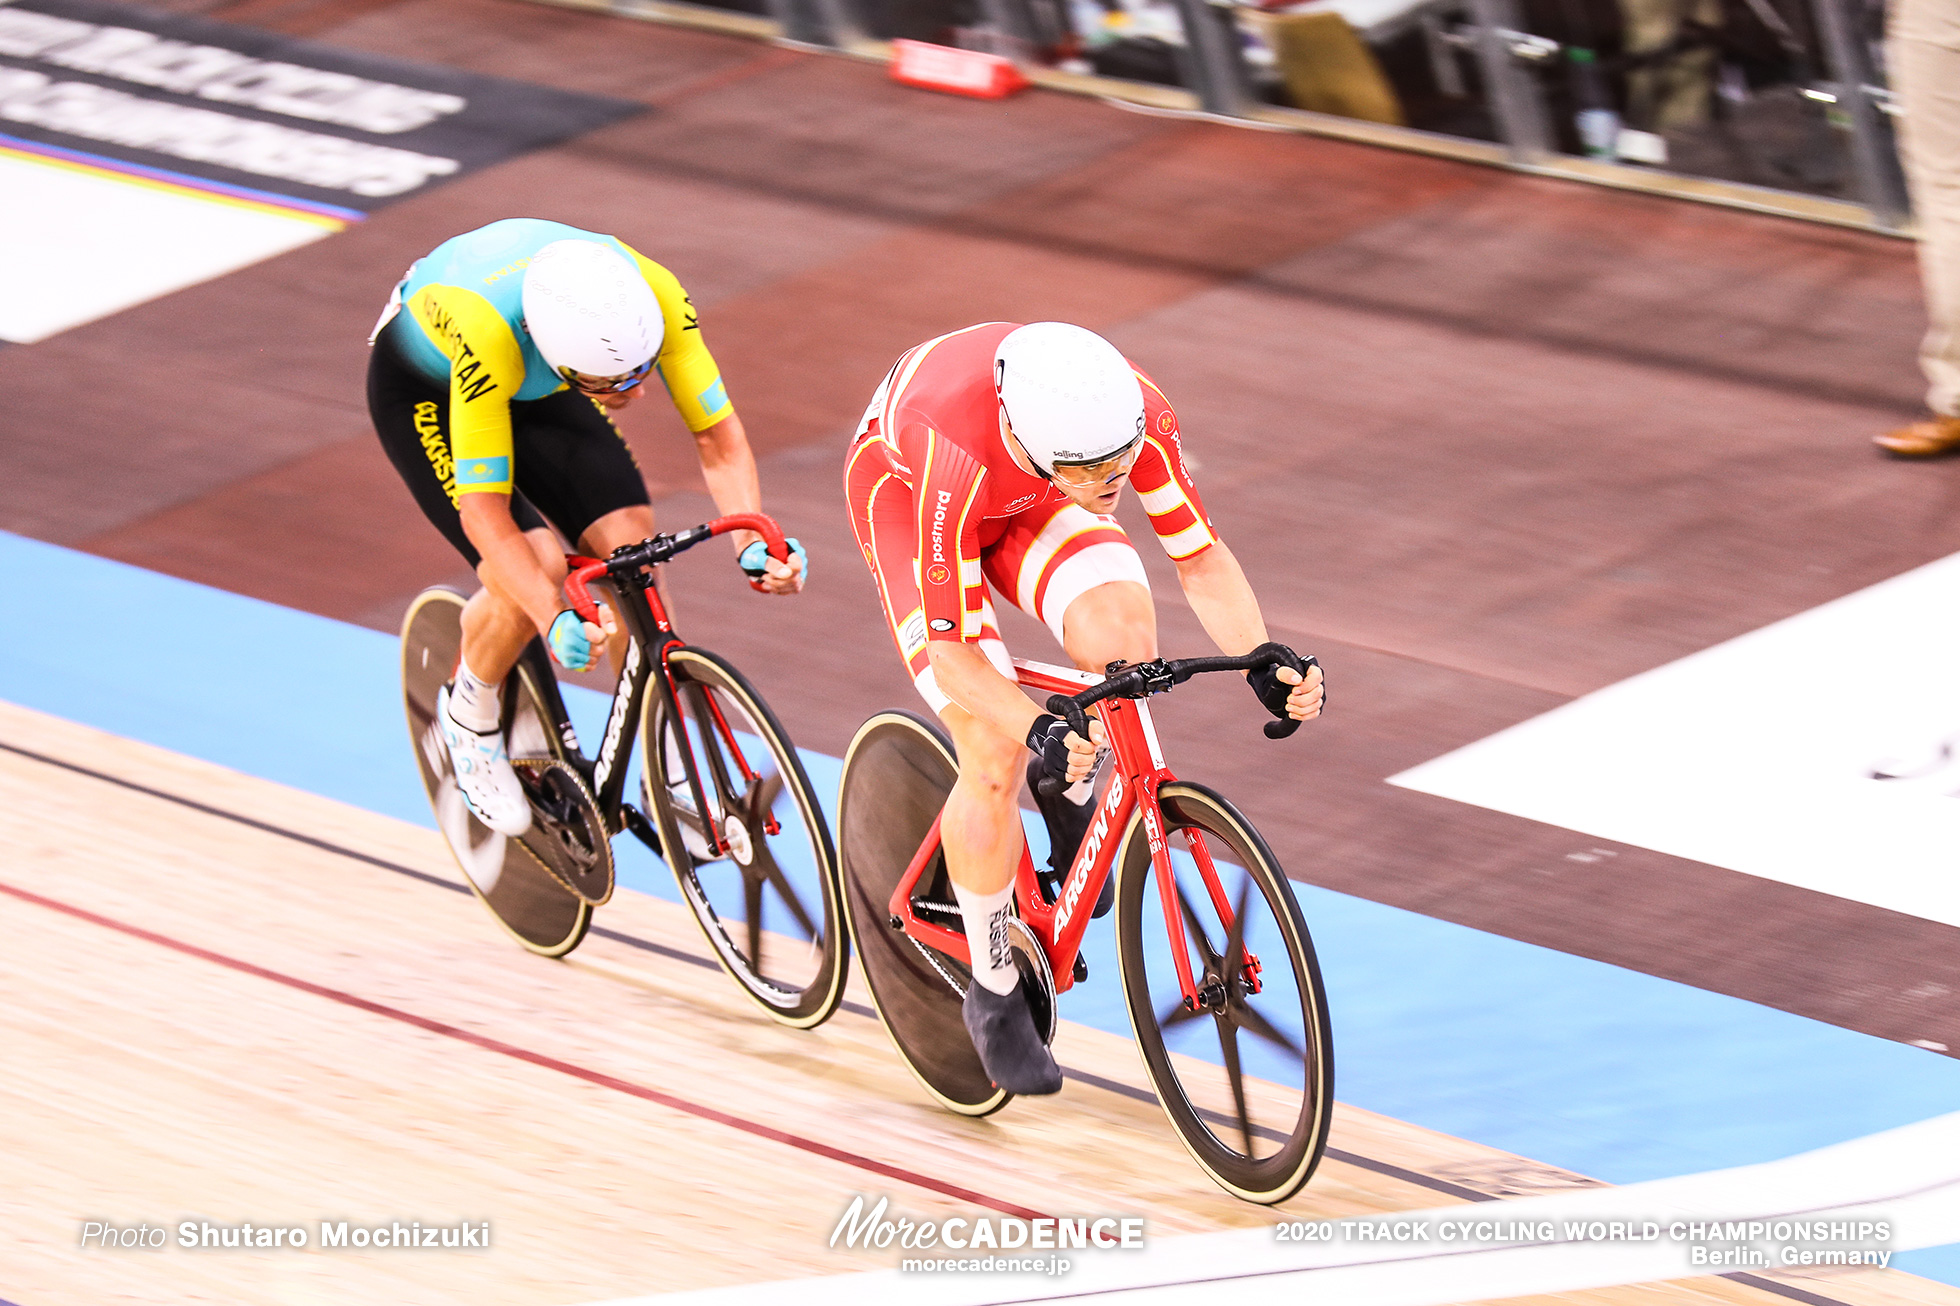 Scratch Race / Men's Omnium / 2020 Track Cycling World Championships